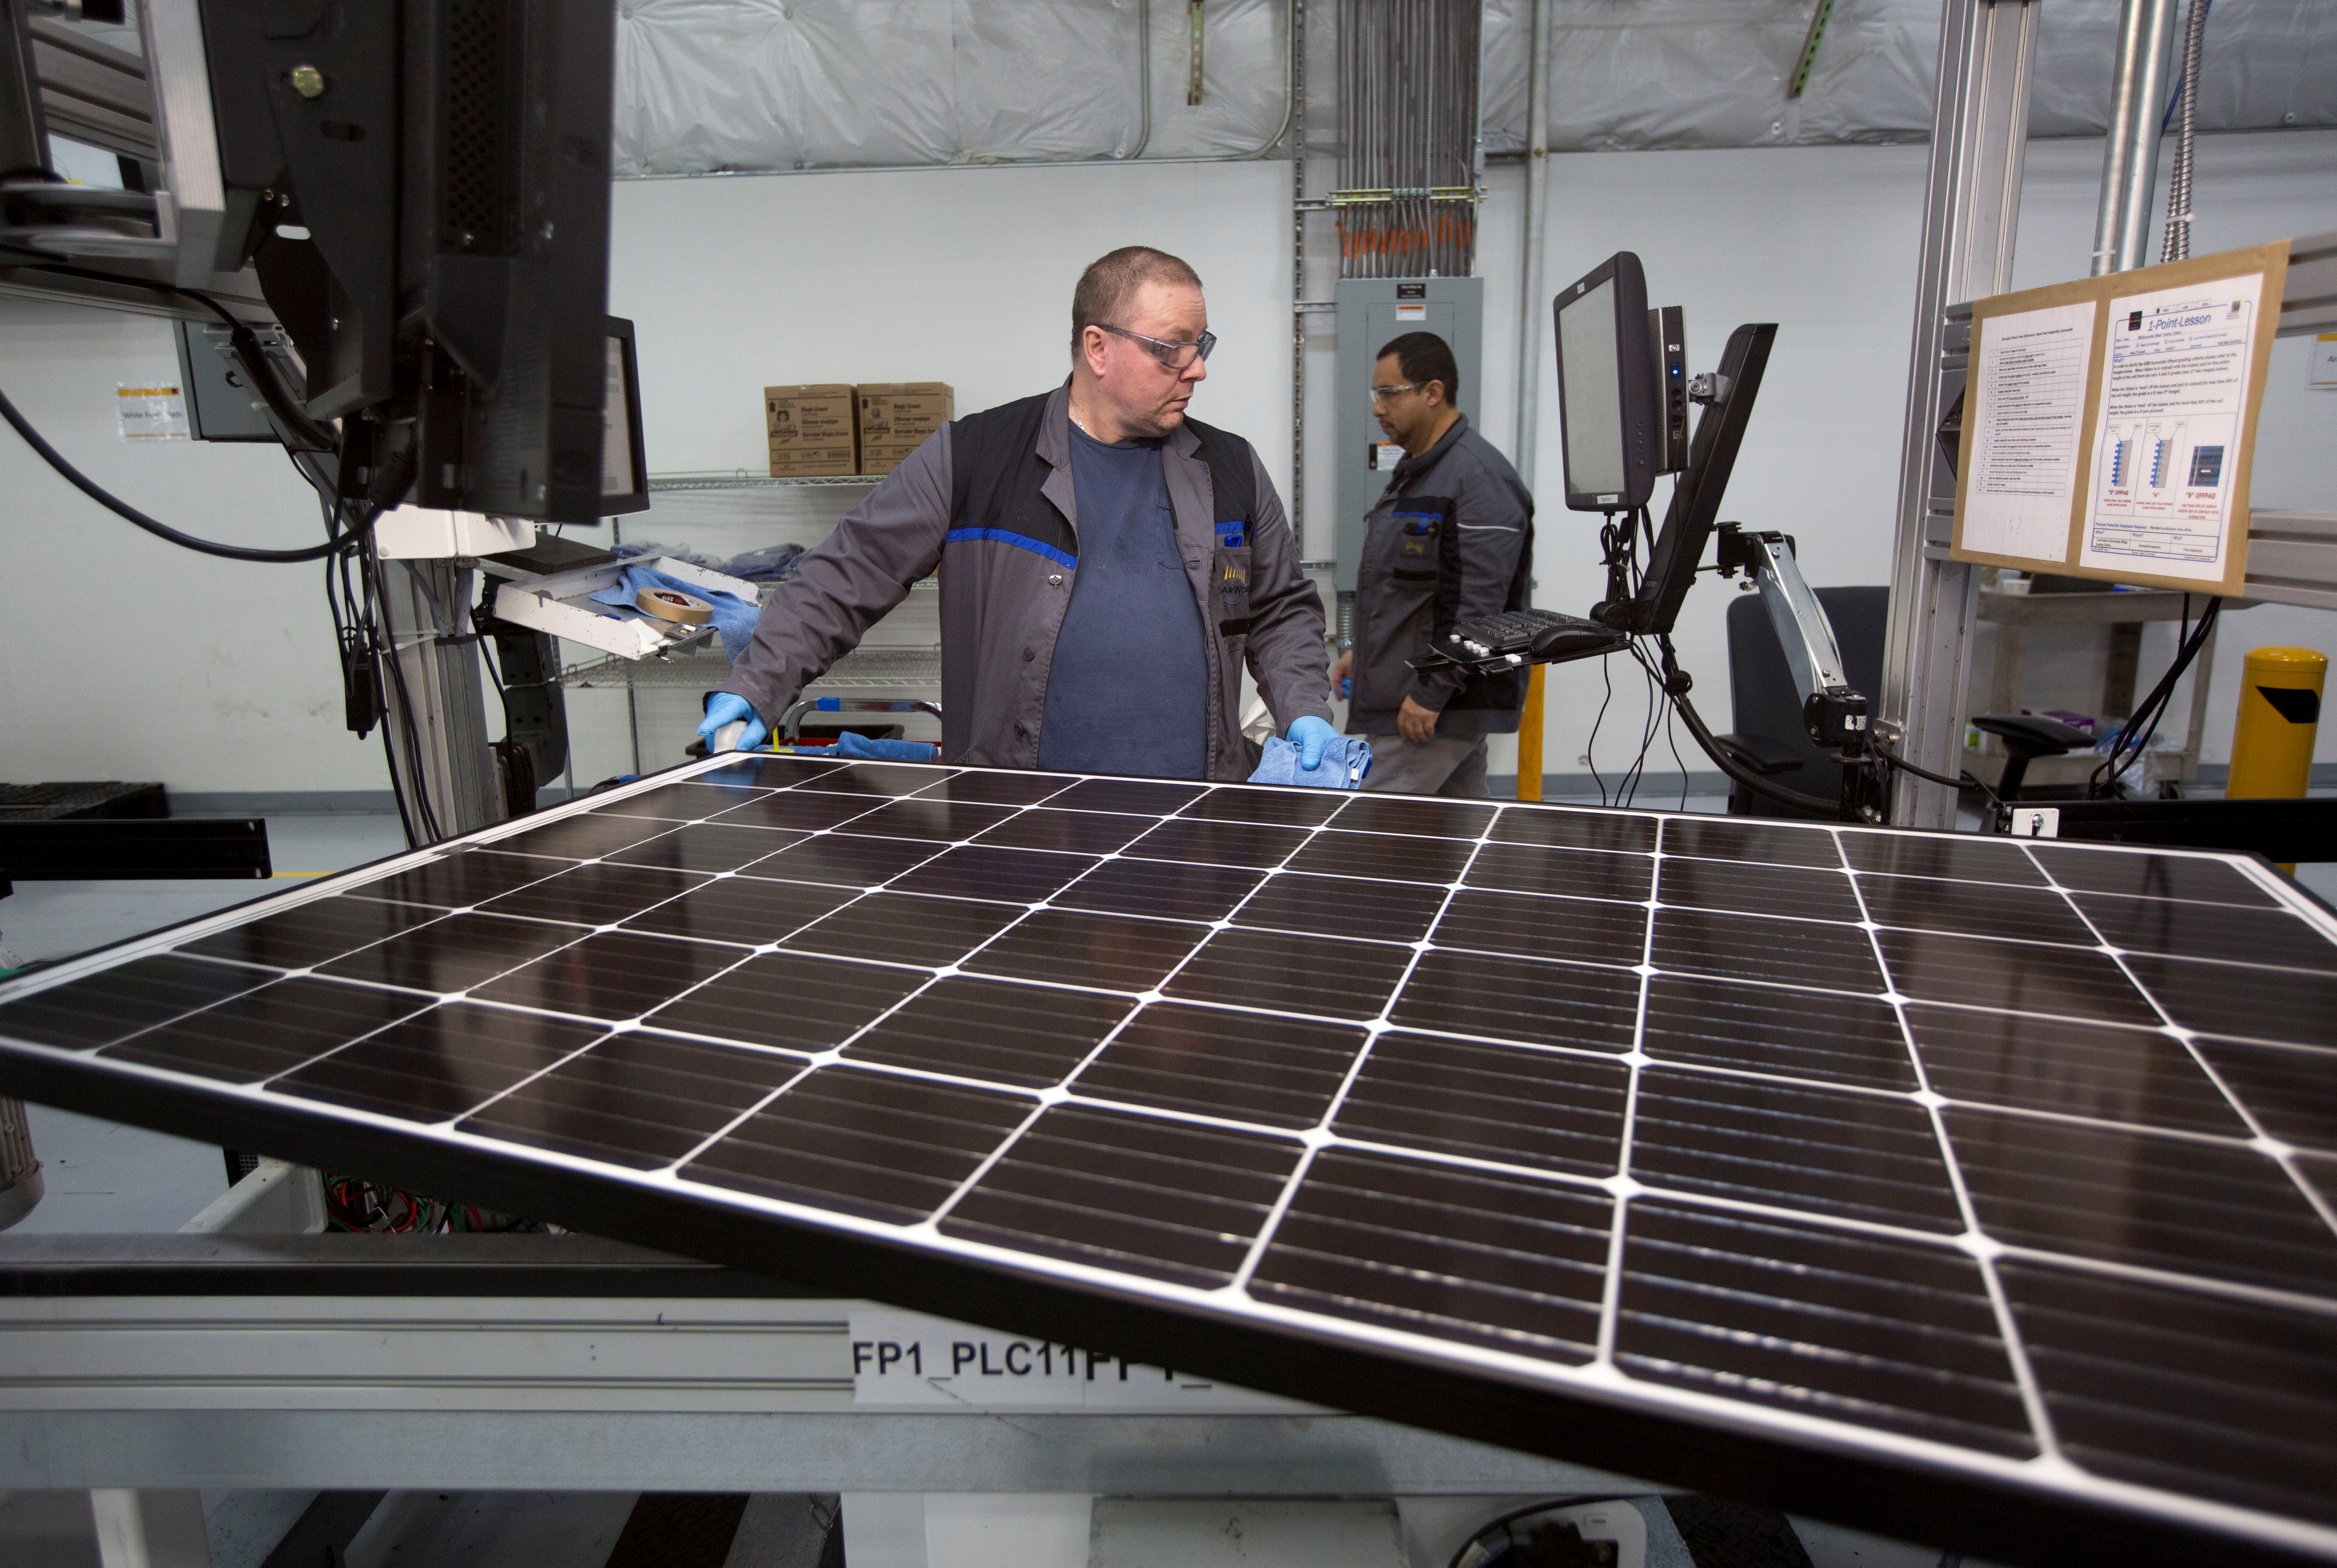 Production operator John White checks a panel at the SolarWorld solar panel factory in Hillsboro, Oregon, U.S., January 15, 2018. Picture taken January 15, 2018. REUTERS/Natalie Behring - RC1A2904F740